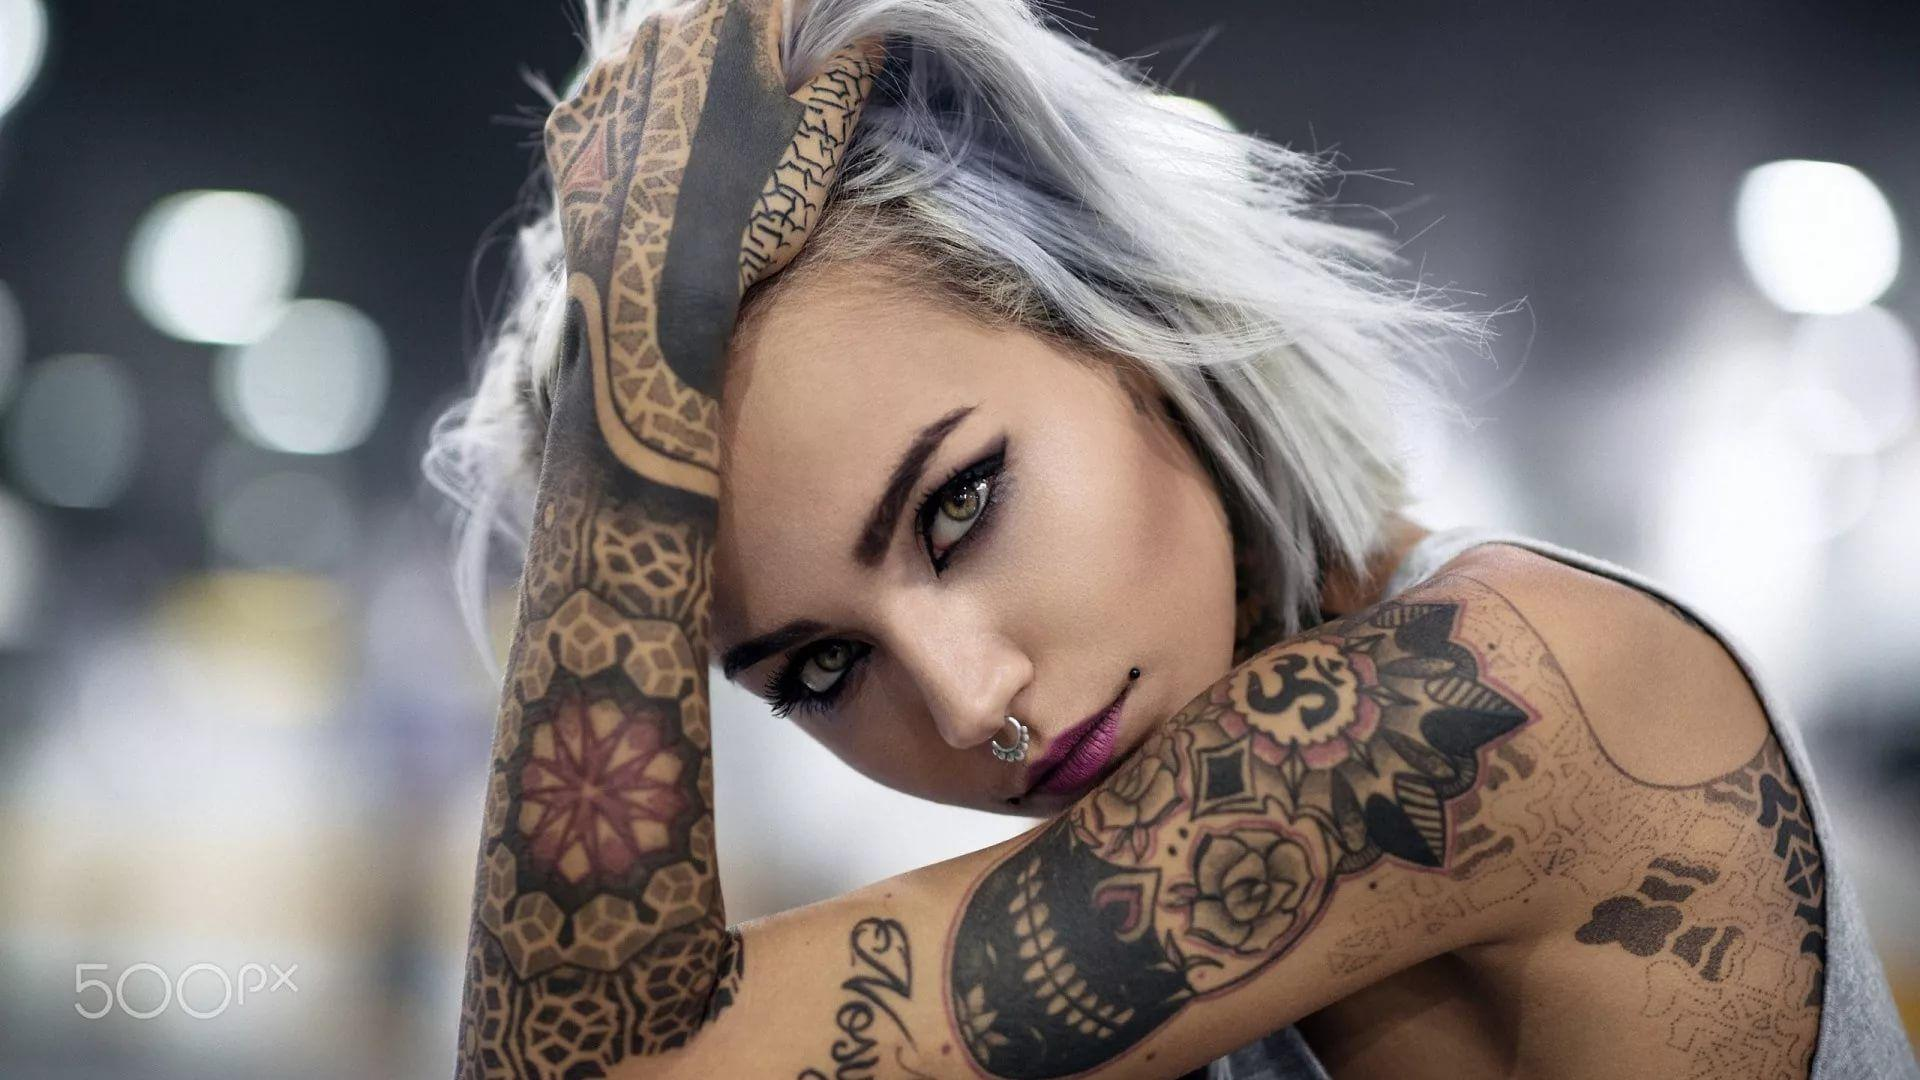 Tattoo 2019 Wallpapers Wallpaper Cave